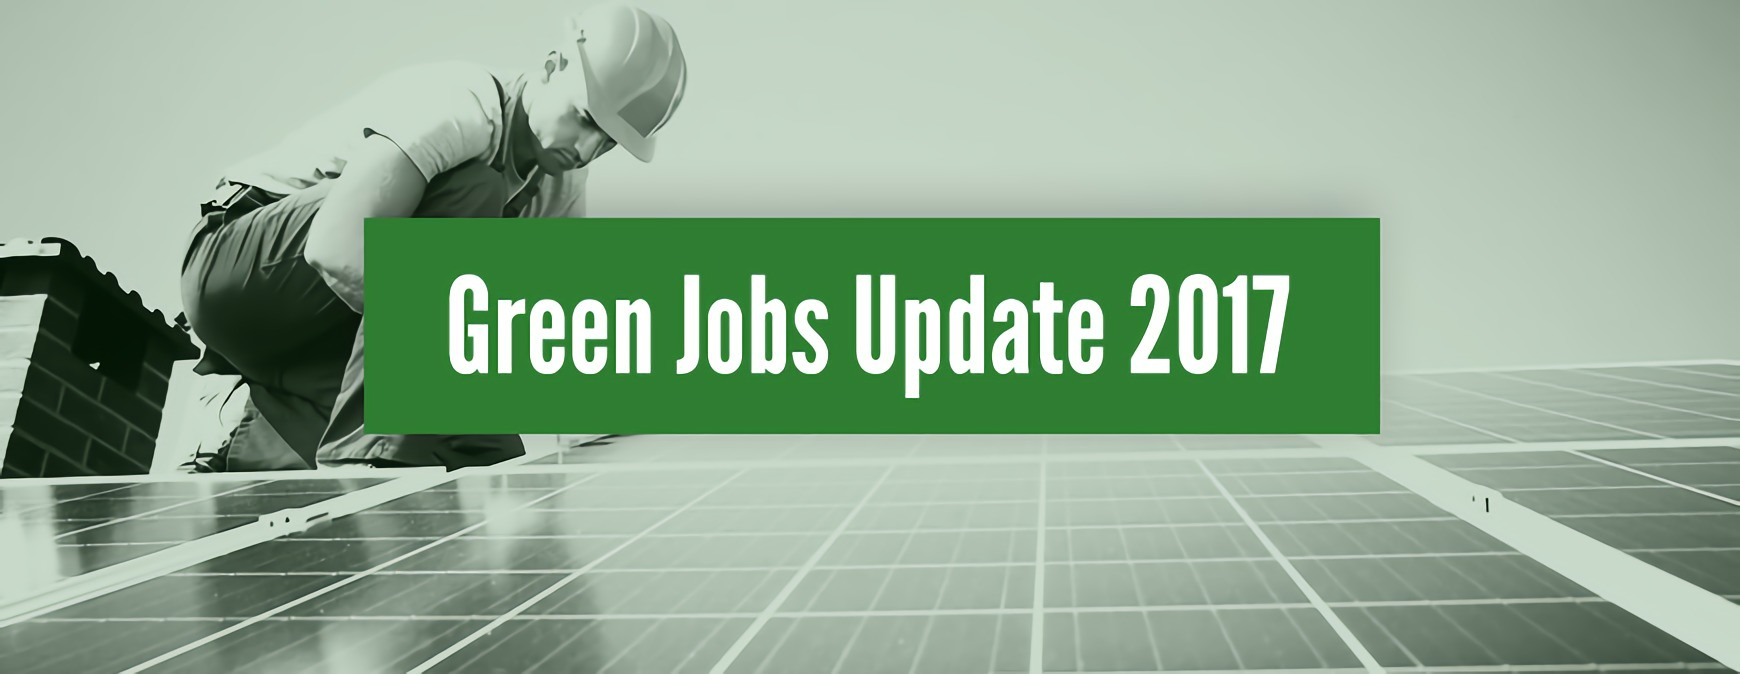 green jobs update 2017